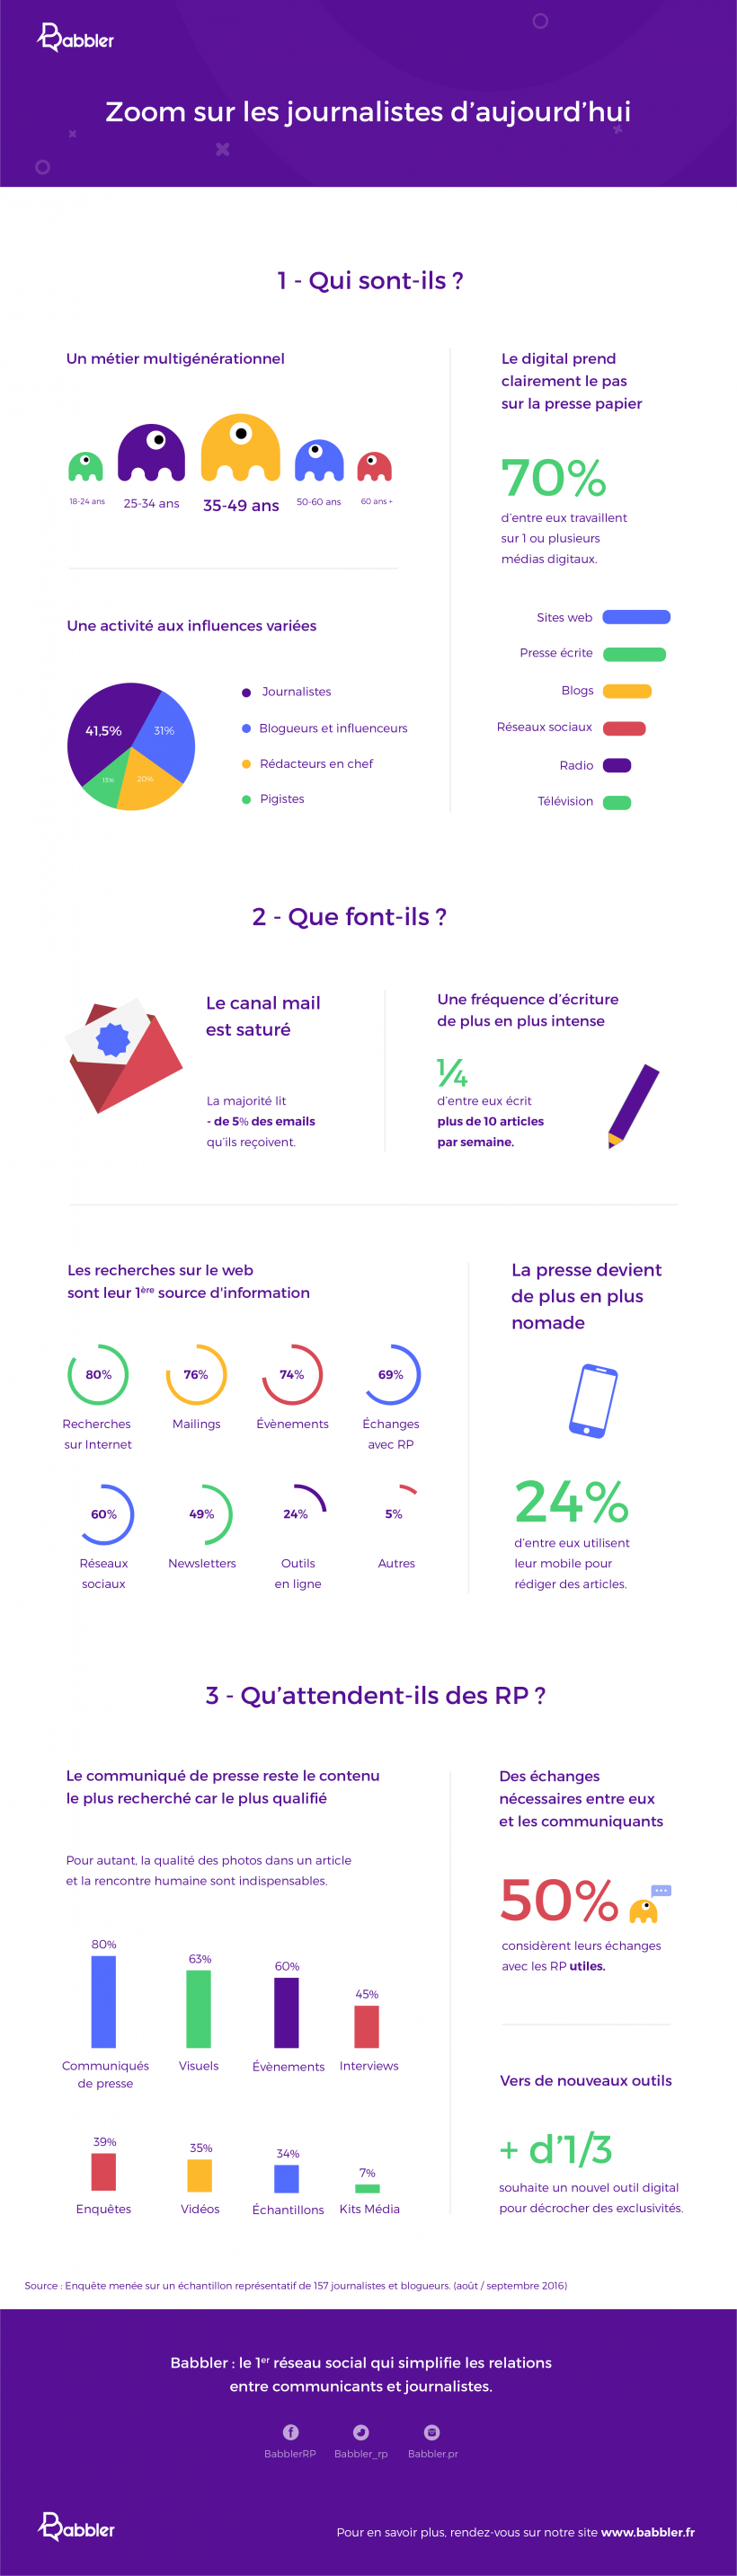 Infographie 333 - Journalistes RP Babbler